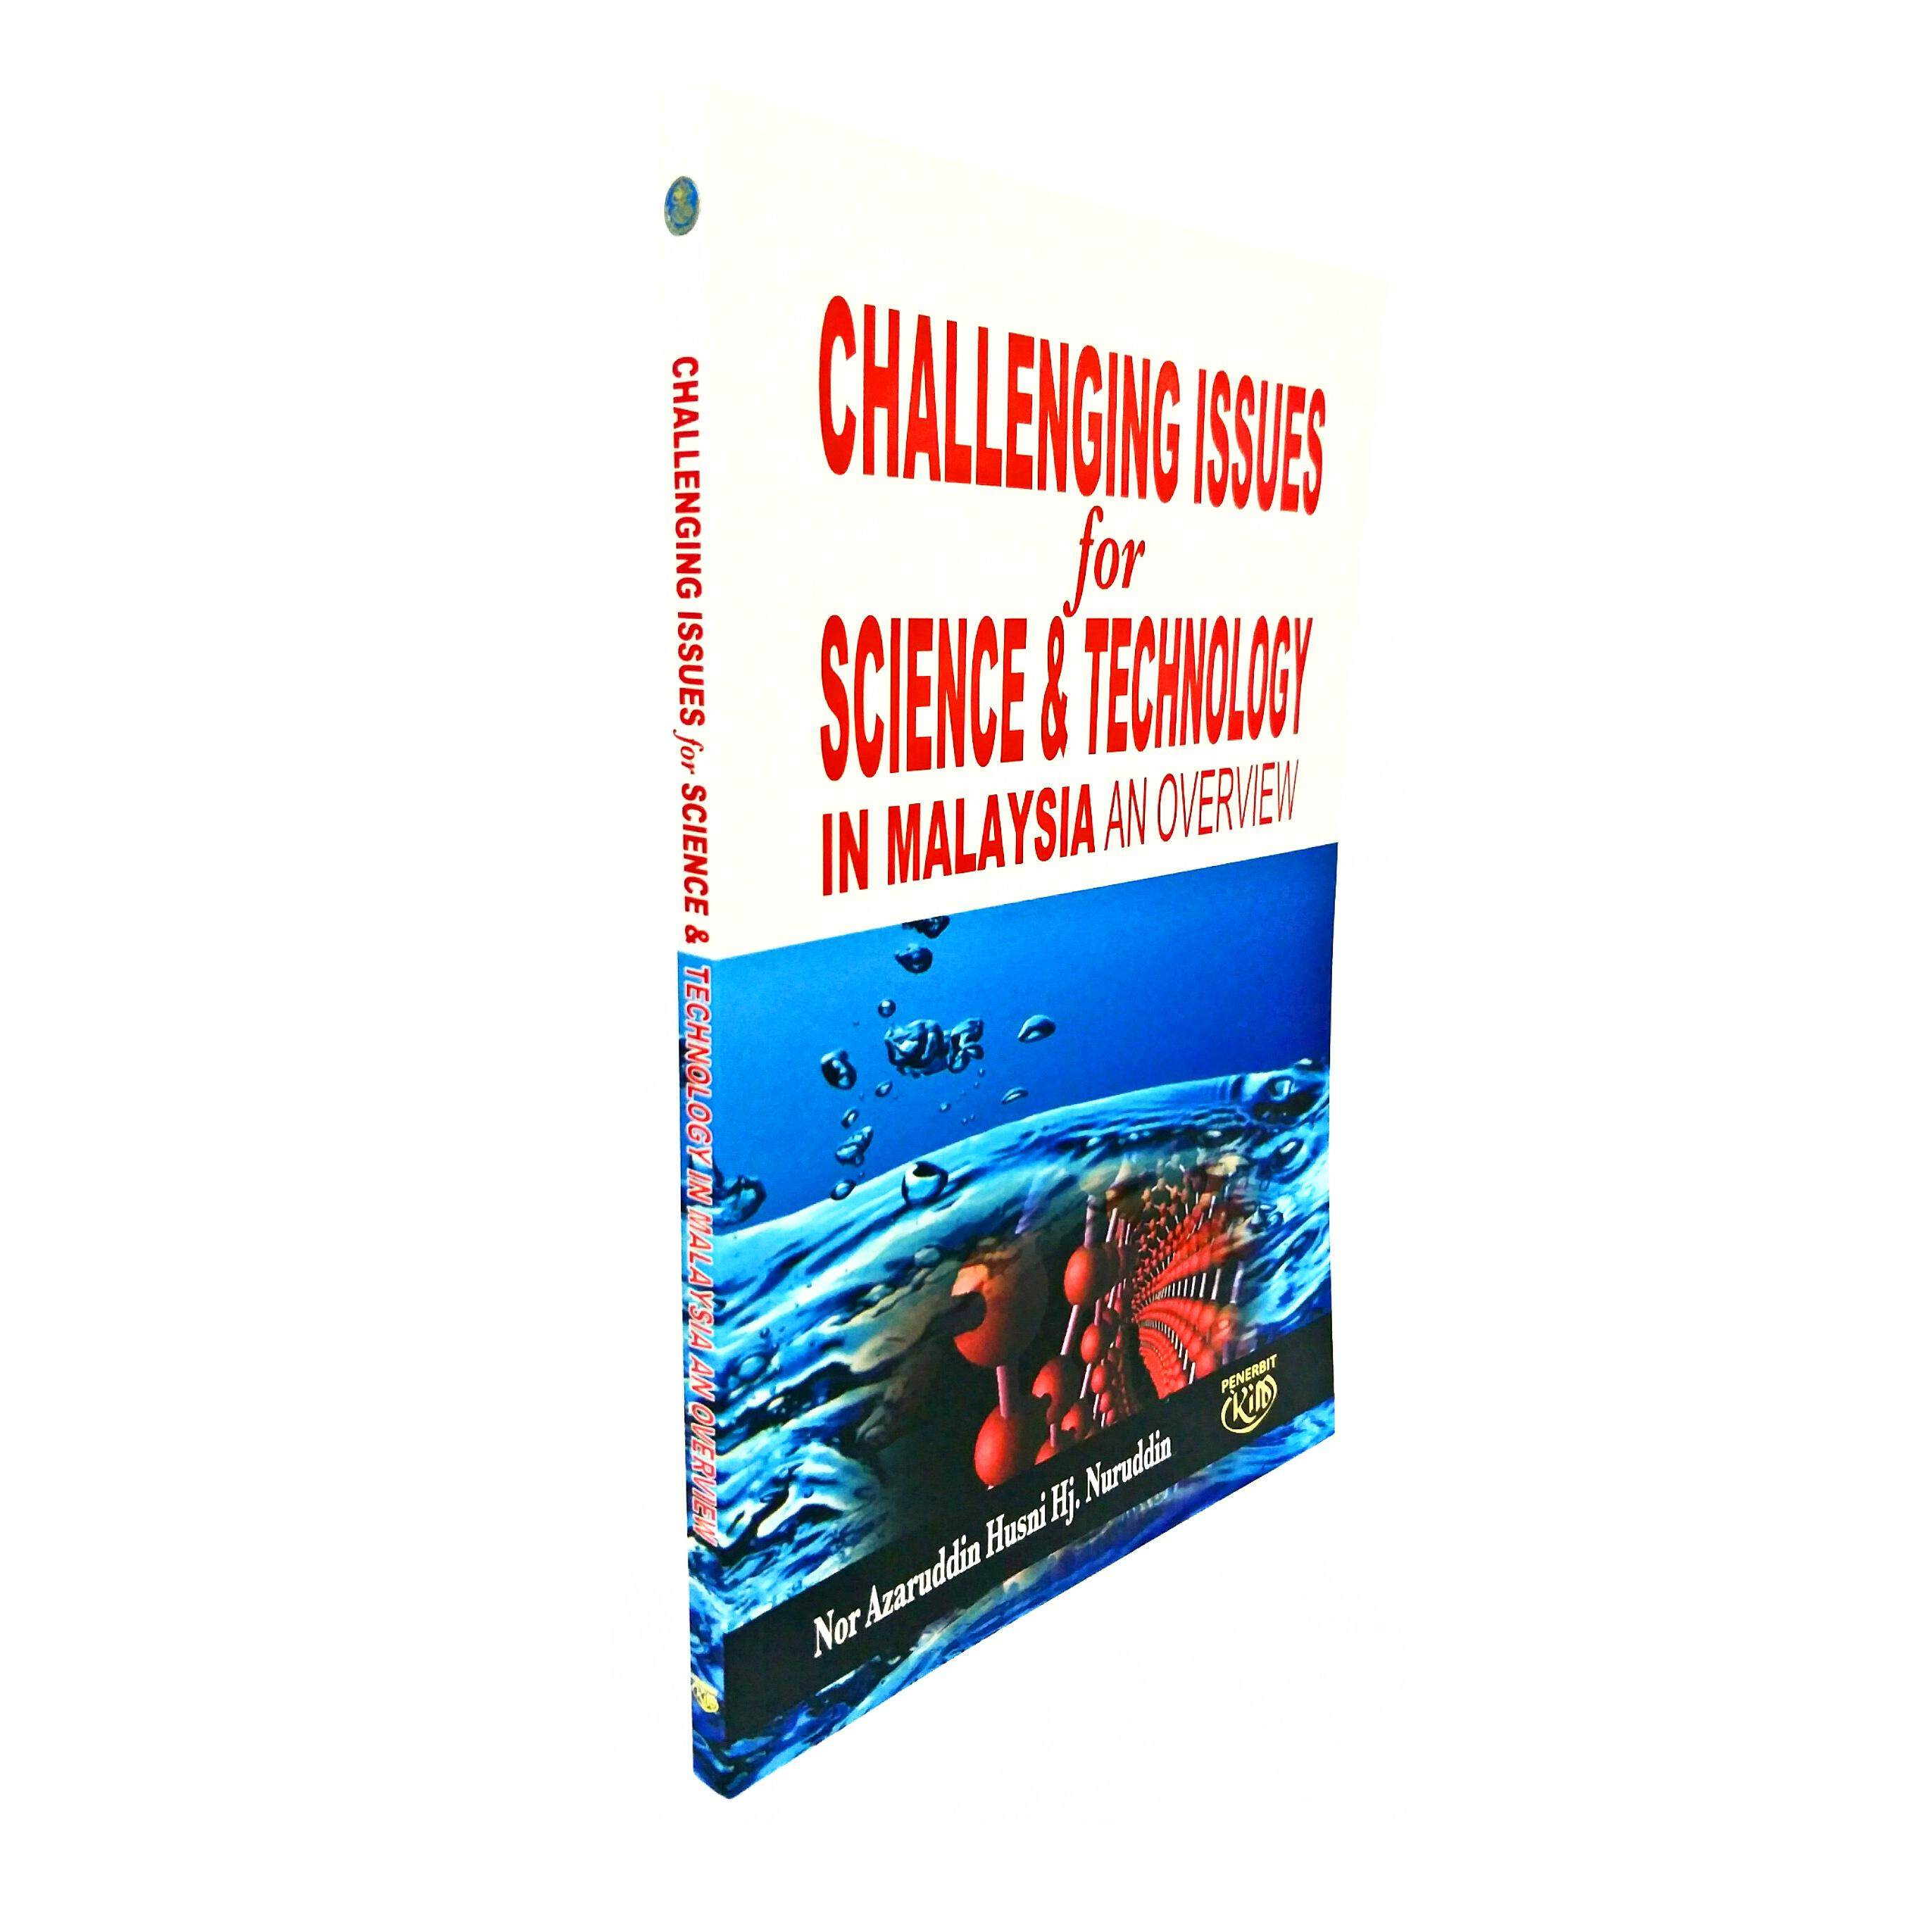 Challenging Issues for Science & Technology In Malaysia An Overview, Nor Azaruddin Husni Hj Nurudin oleh IKIM